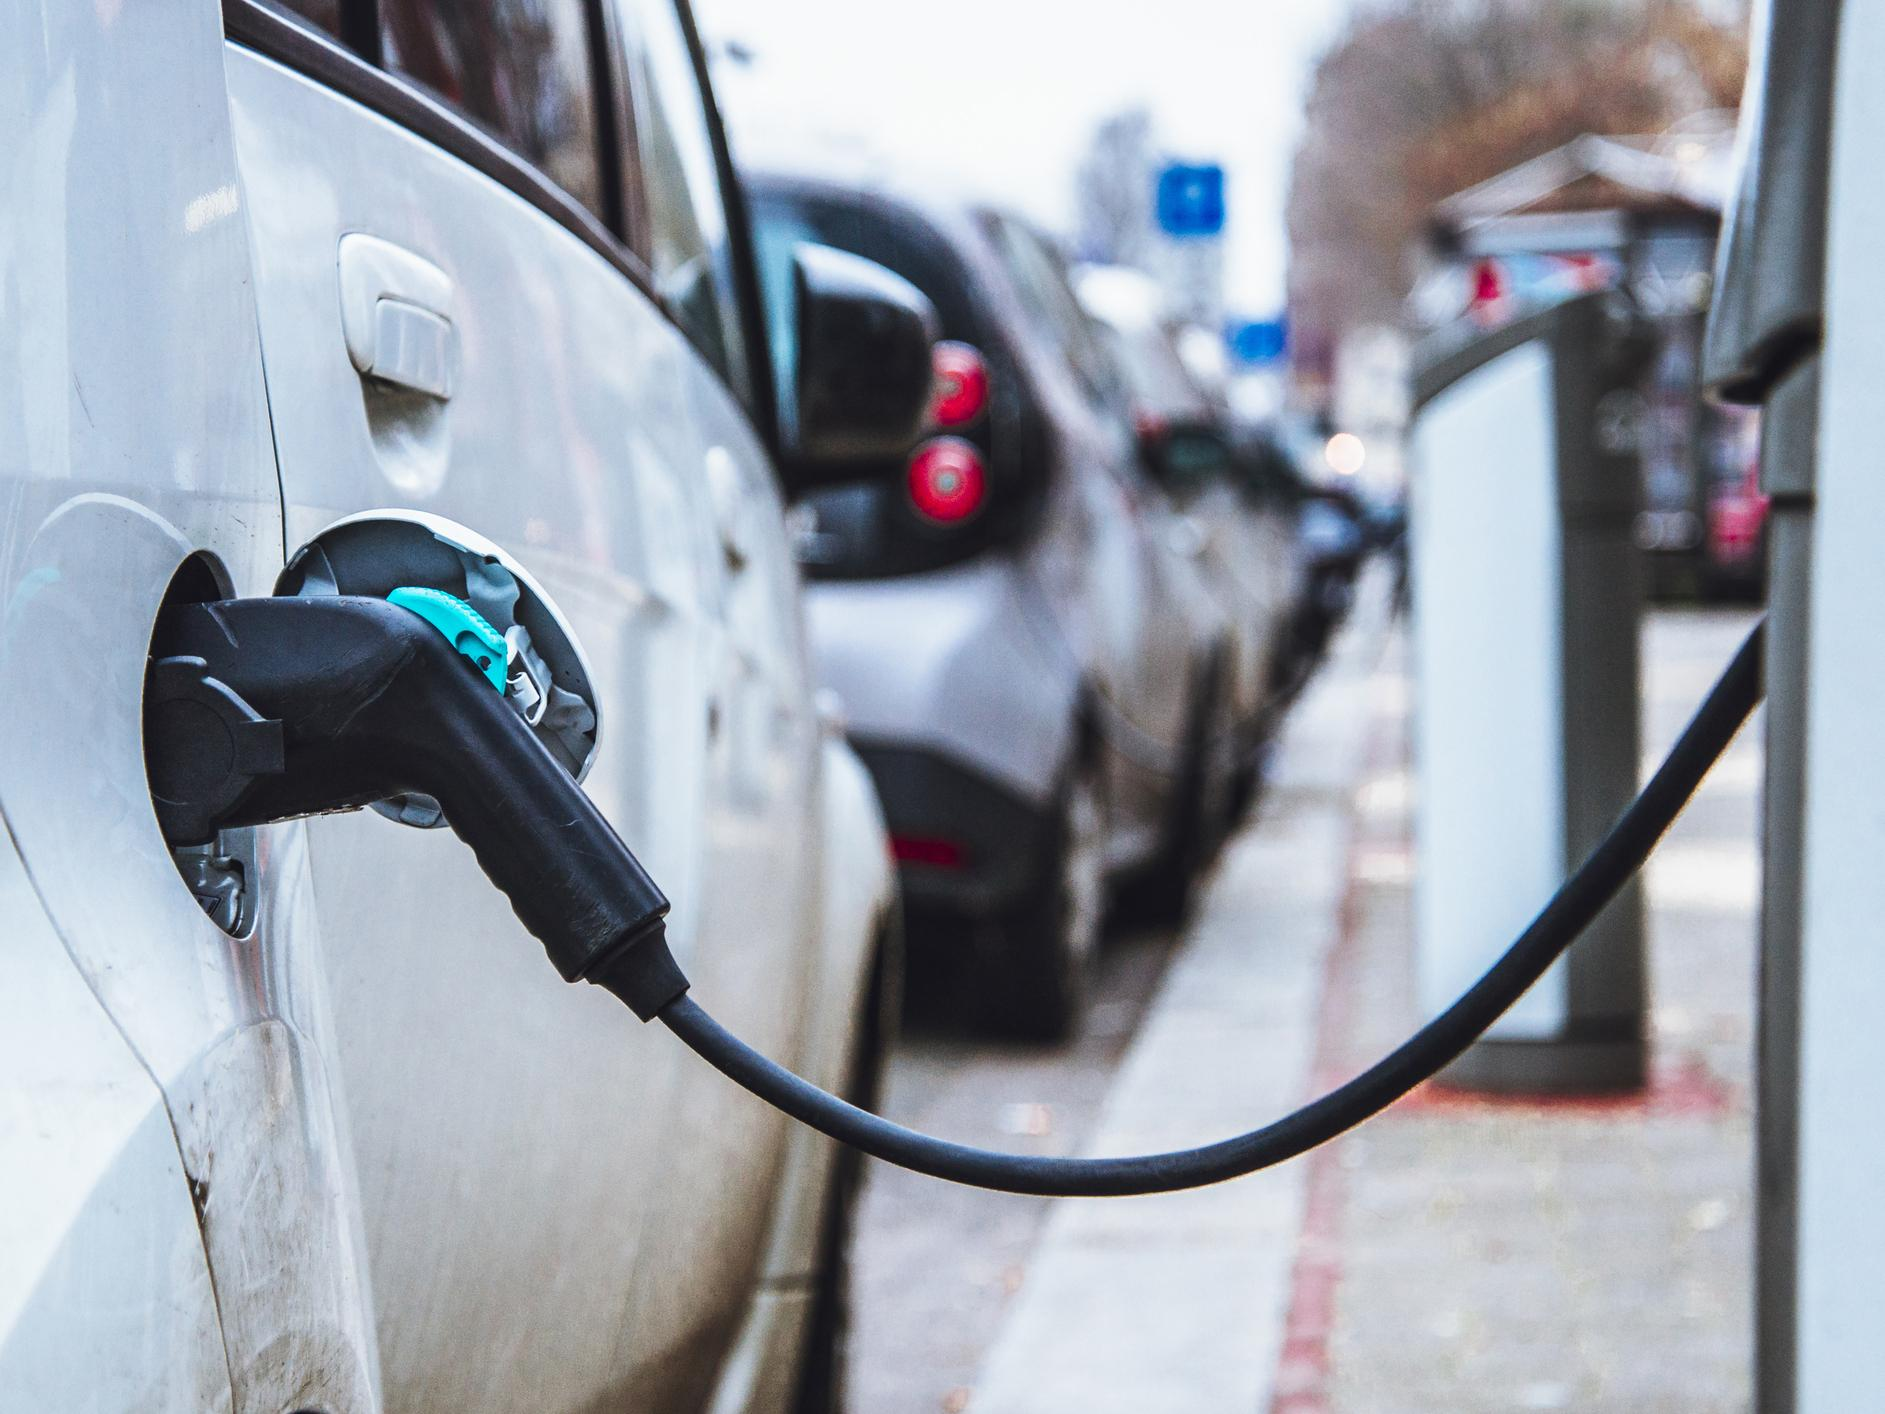 Electric vehicles already able to cut greenhouse gas emissions by half